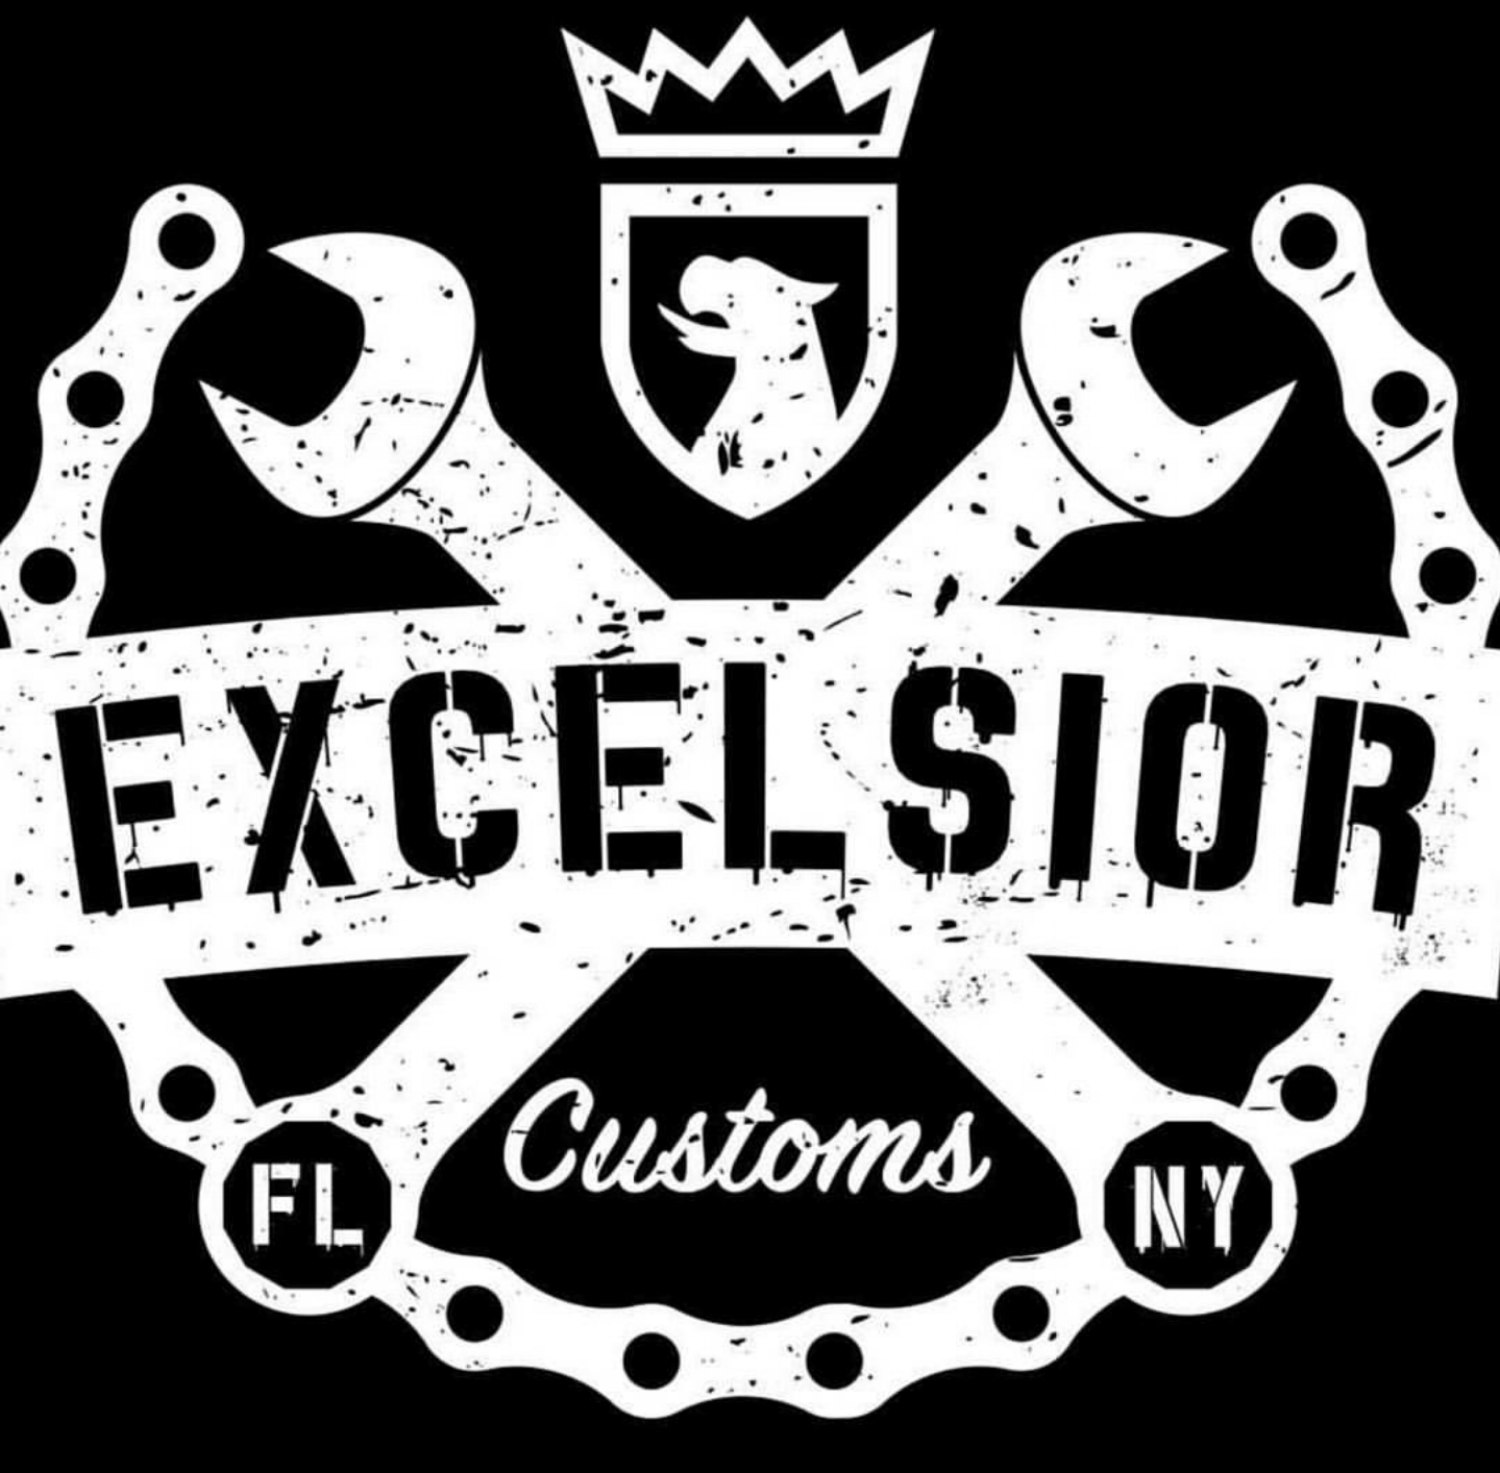 Excelsior Customs